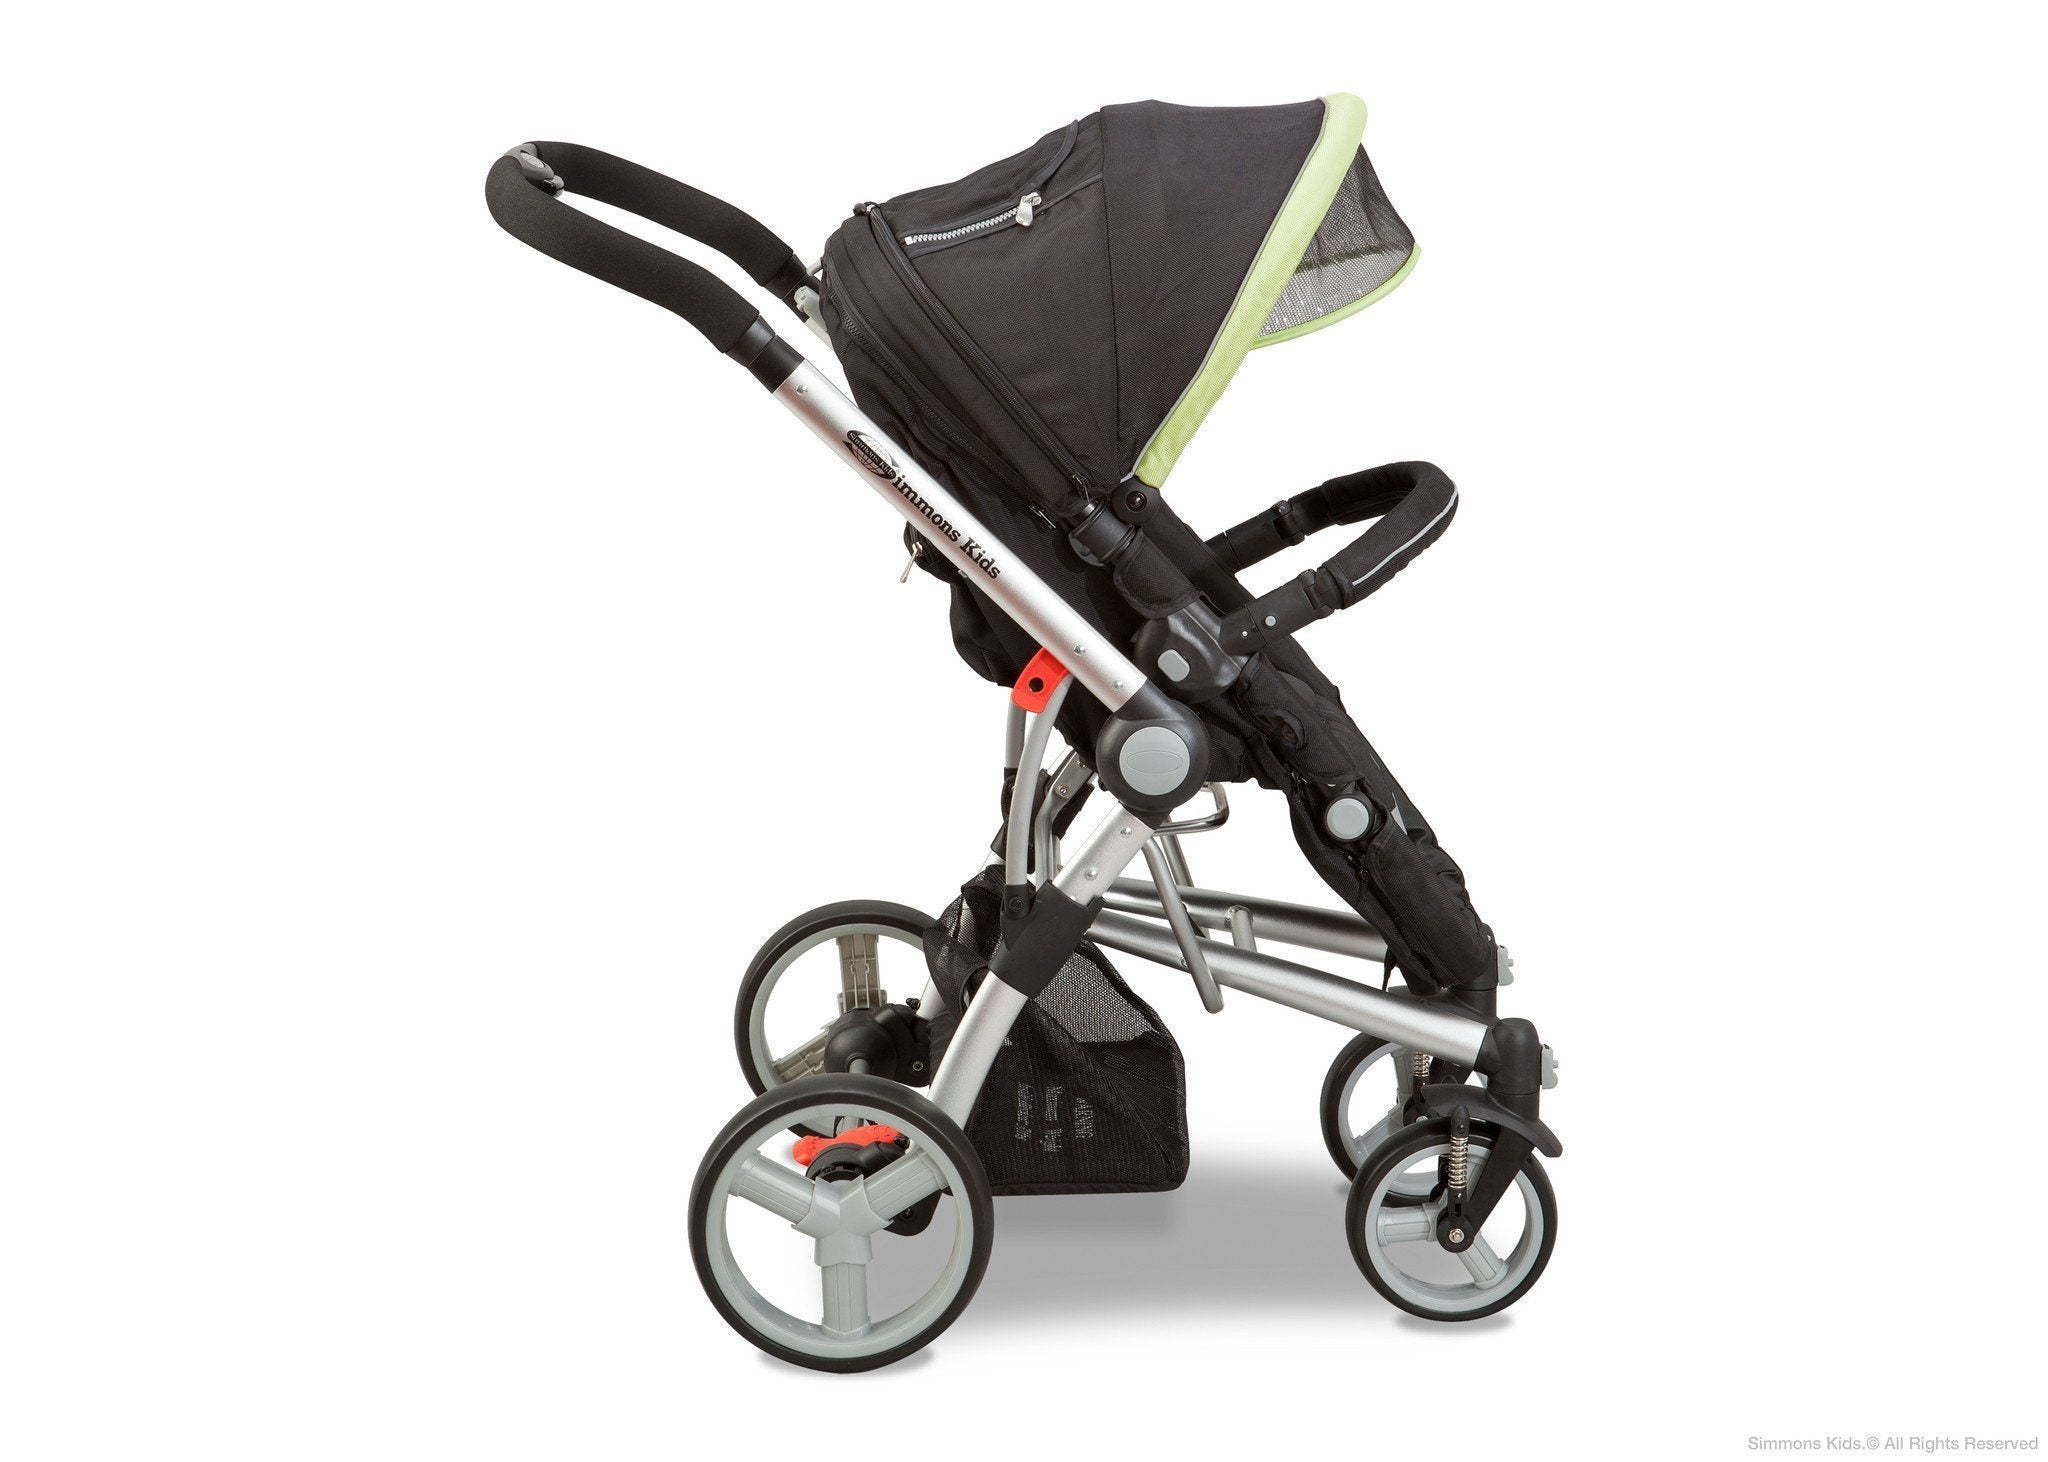 Simmons Kids Black with Green Trim (013) Comfort Tech Tour Buggy Stroller, Full Right View with Canopy Option